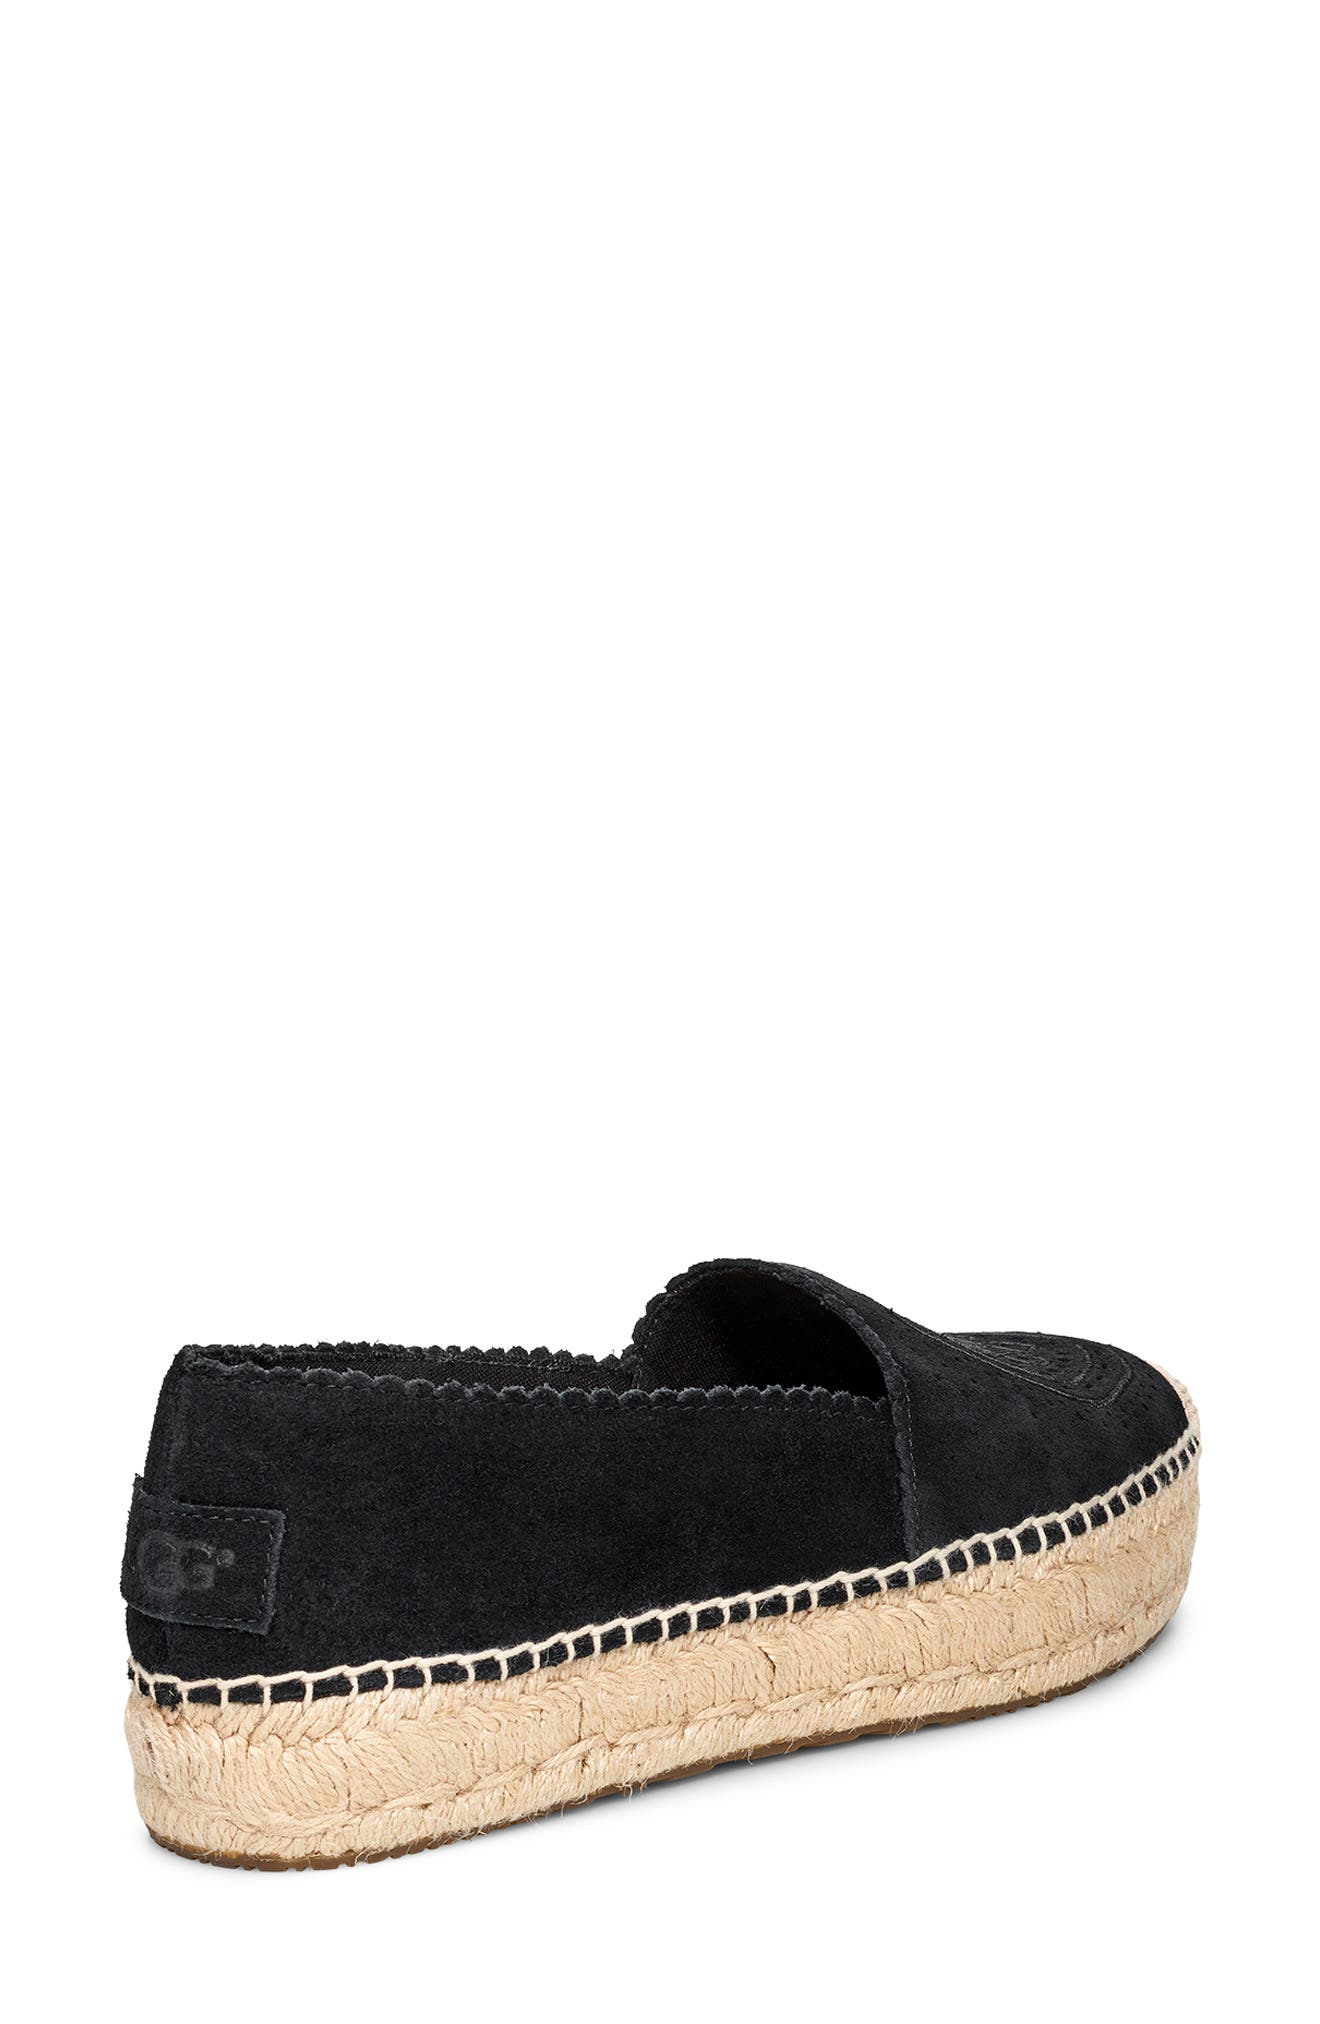 UGG<SUP>®</SUP>, Heidi Perforated Espadrille, Alternate thumbnail 2, color, BLACK SUEDE